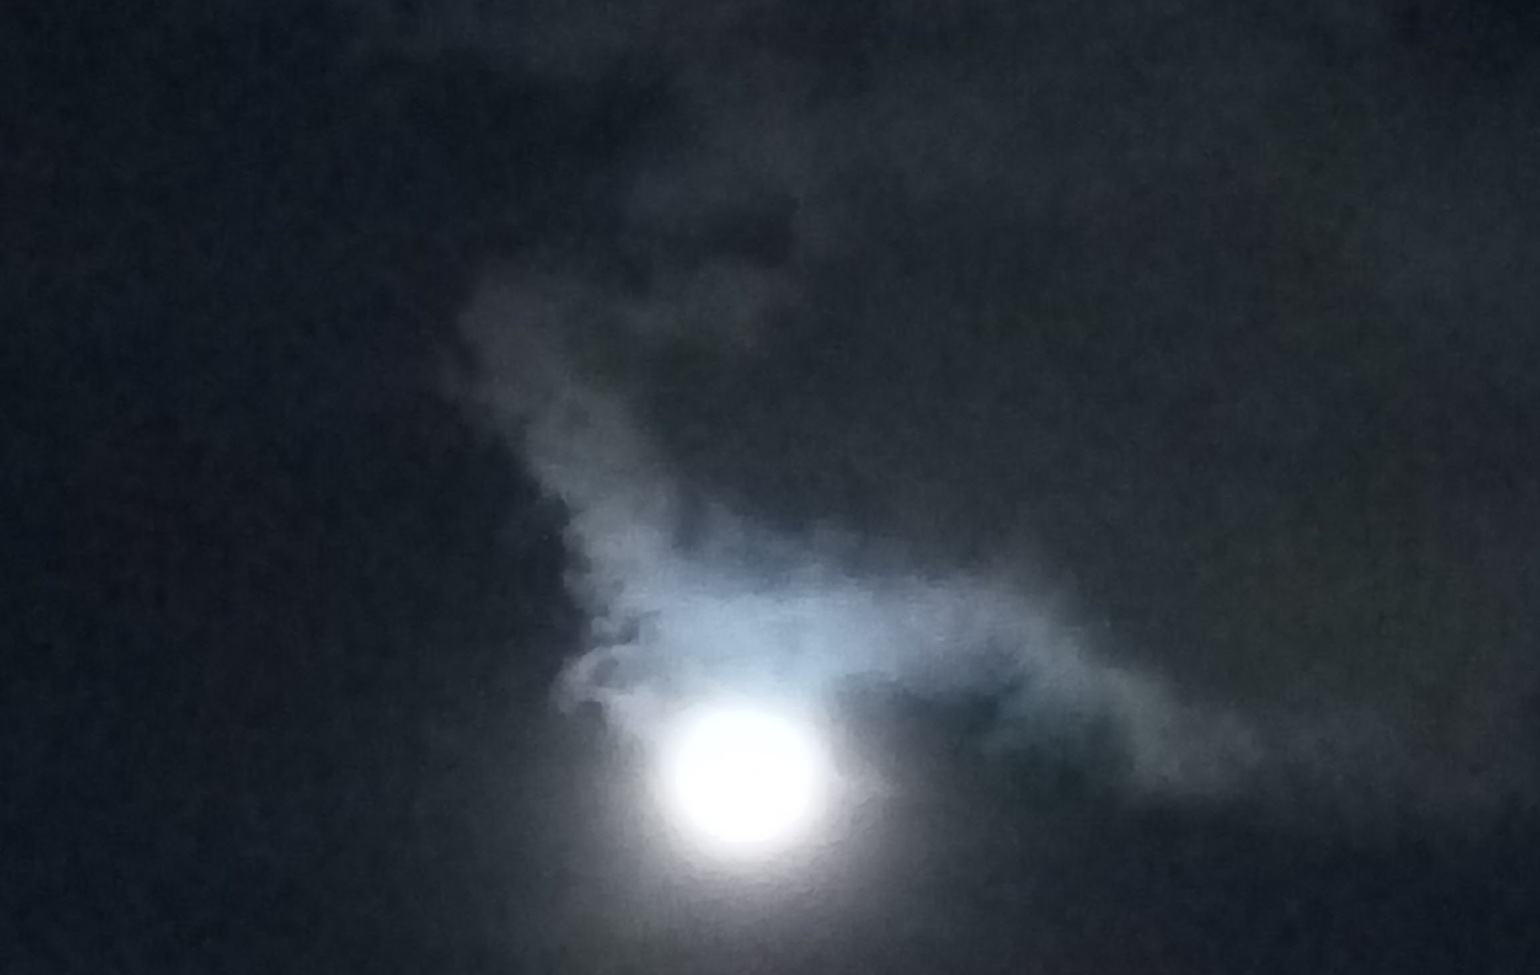 Moon or Mom? - A view of the Clouds unveiling the Moon